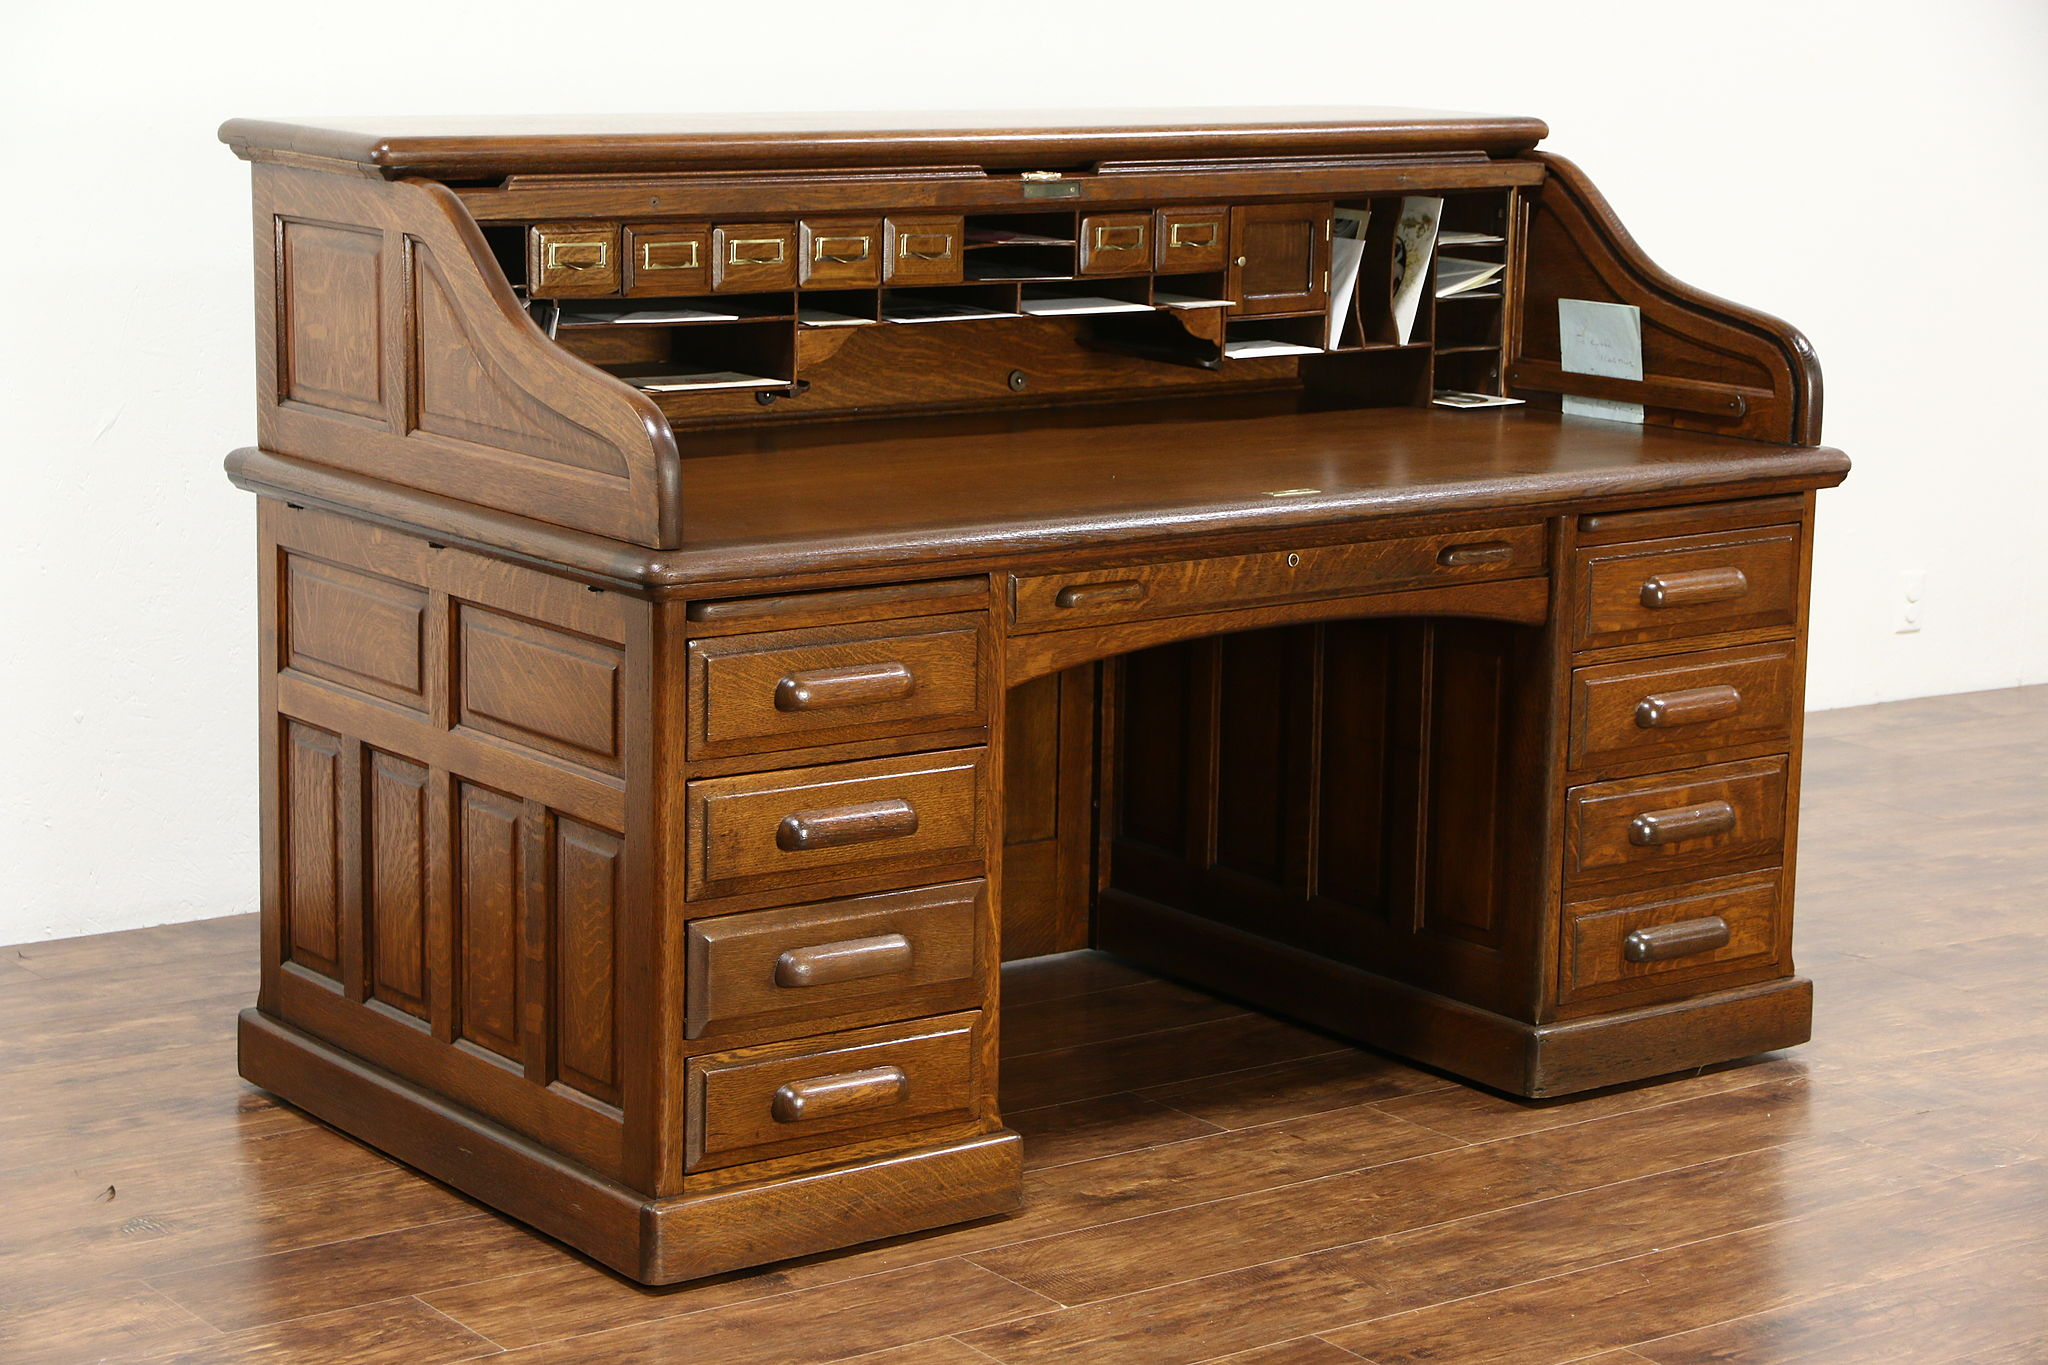 Sold Oak Quarter Sawn Antique 1895 Roll Top Desk Raised